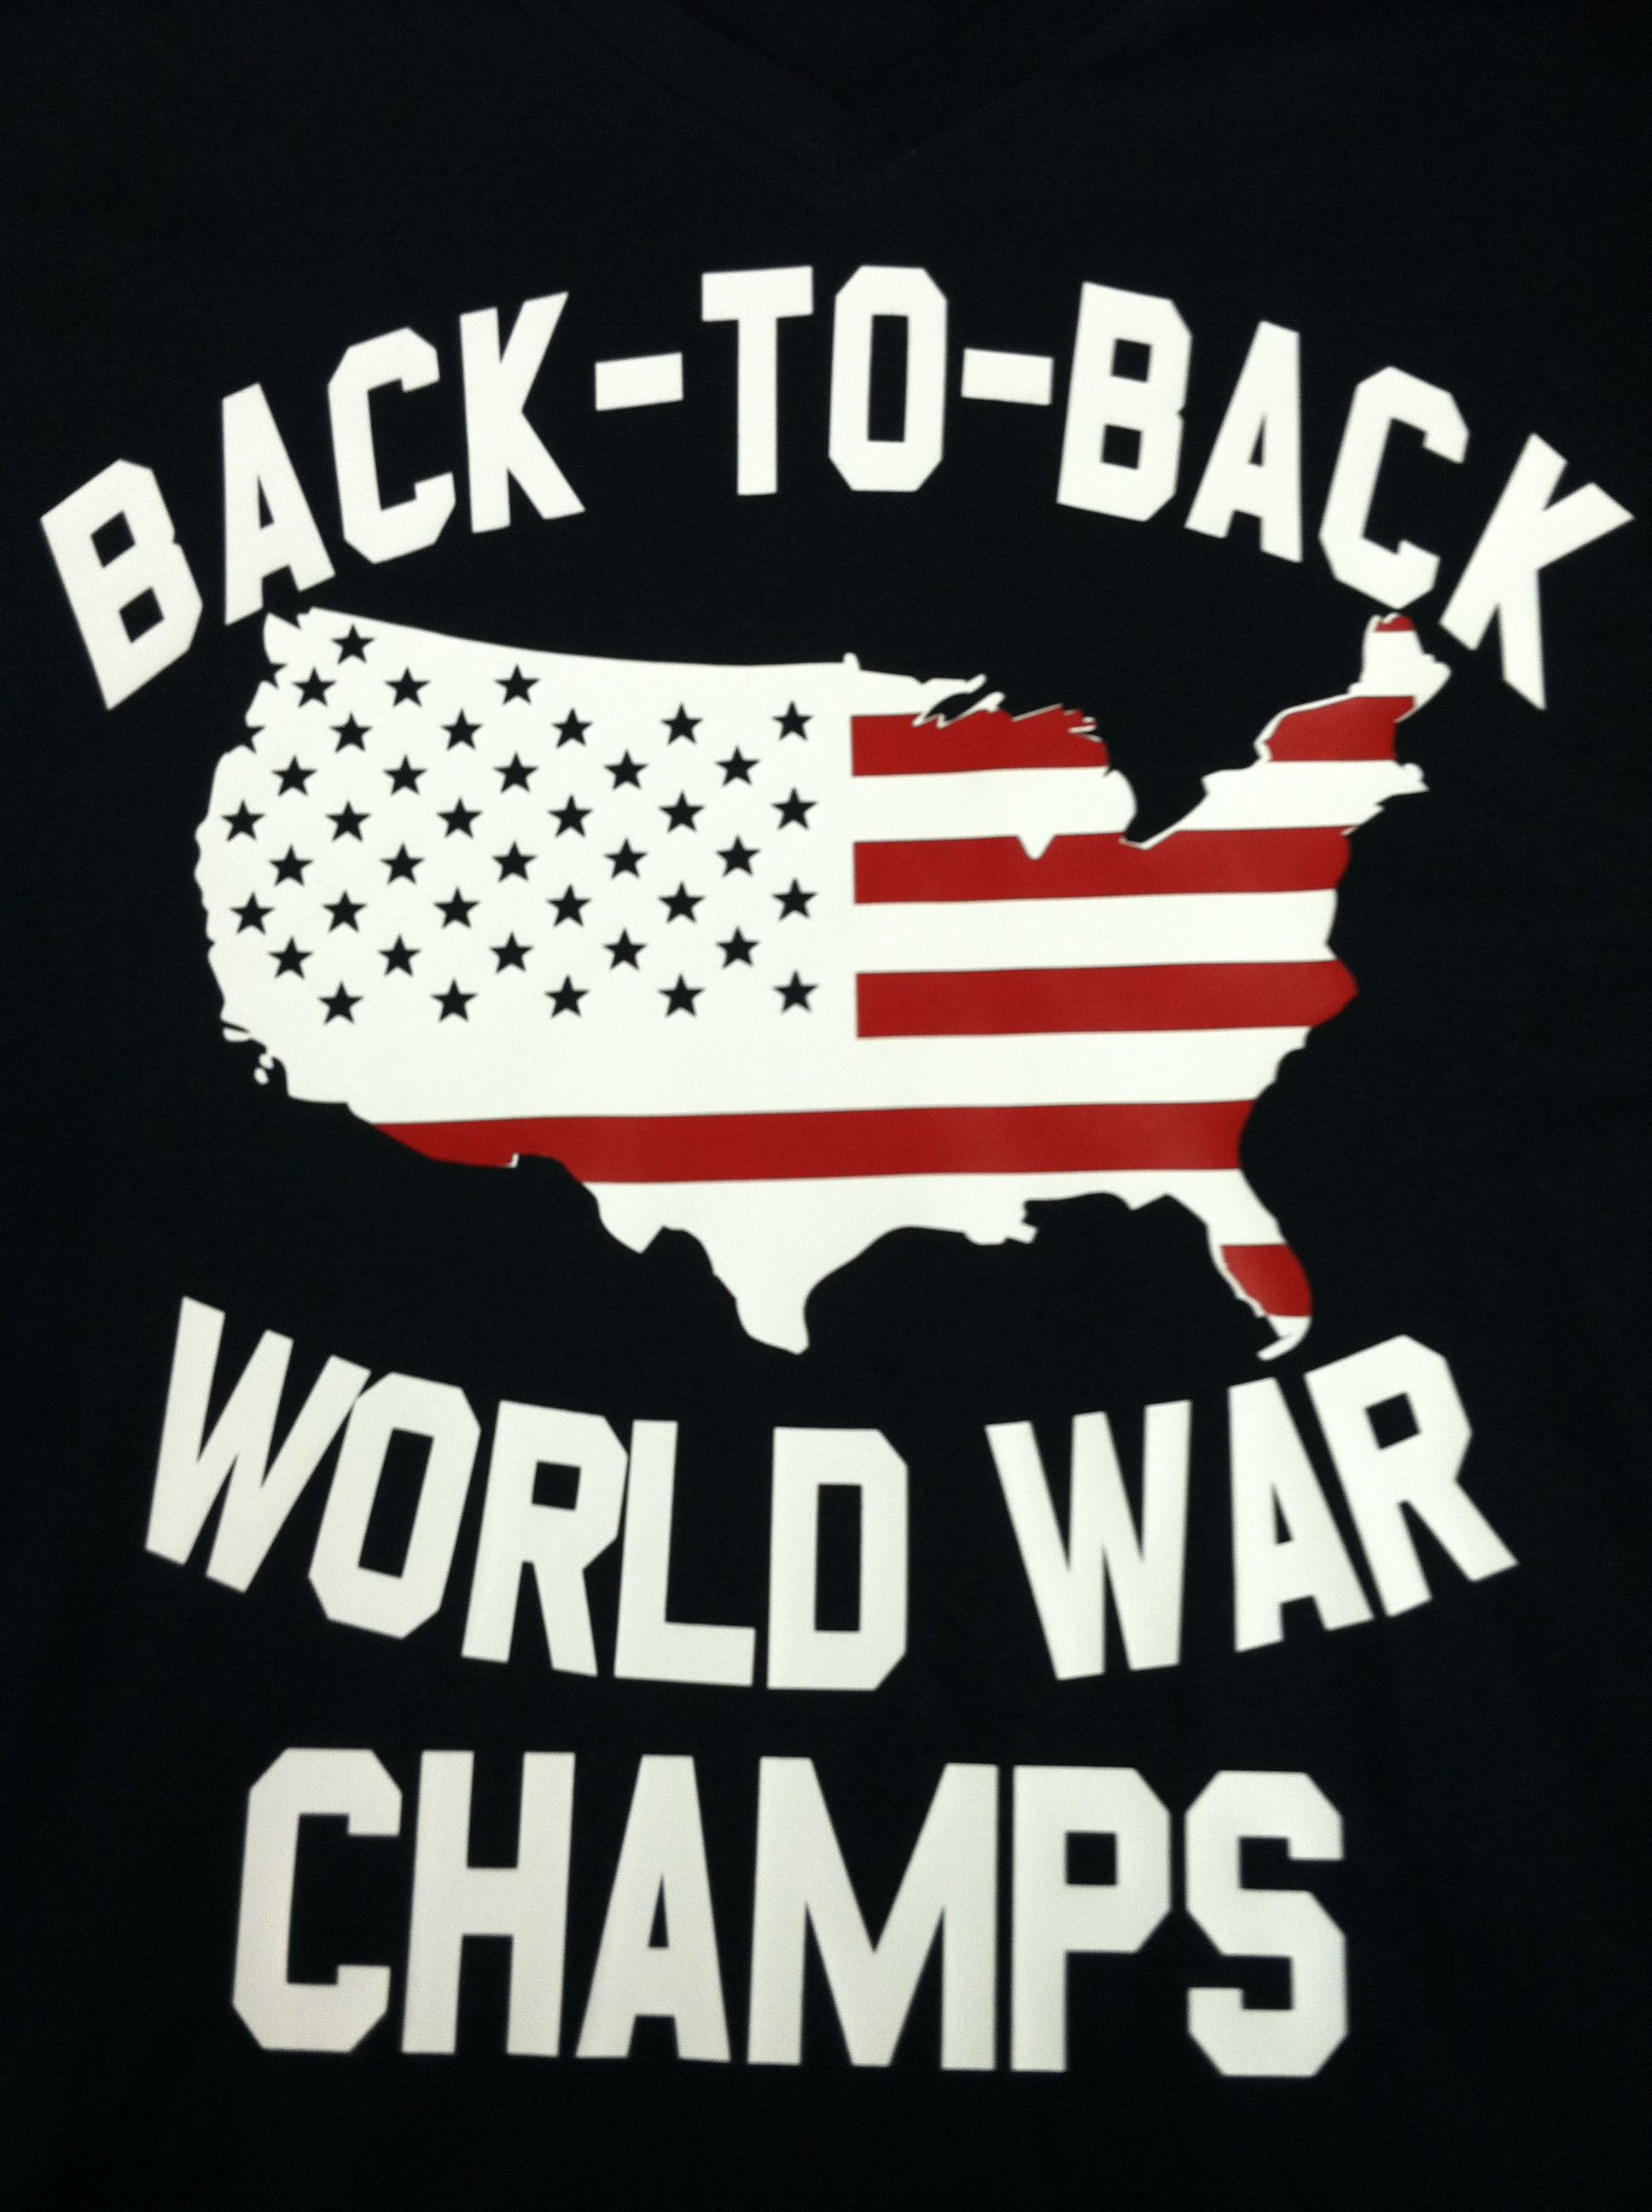 b53da21f Back to back world war champs shirt | Misc. Shirt Designs | Cool ...